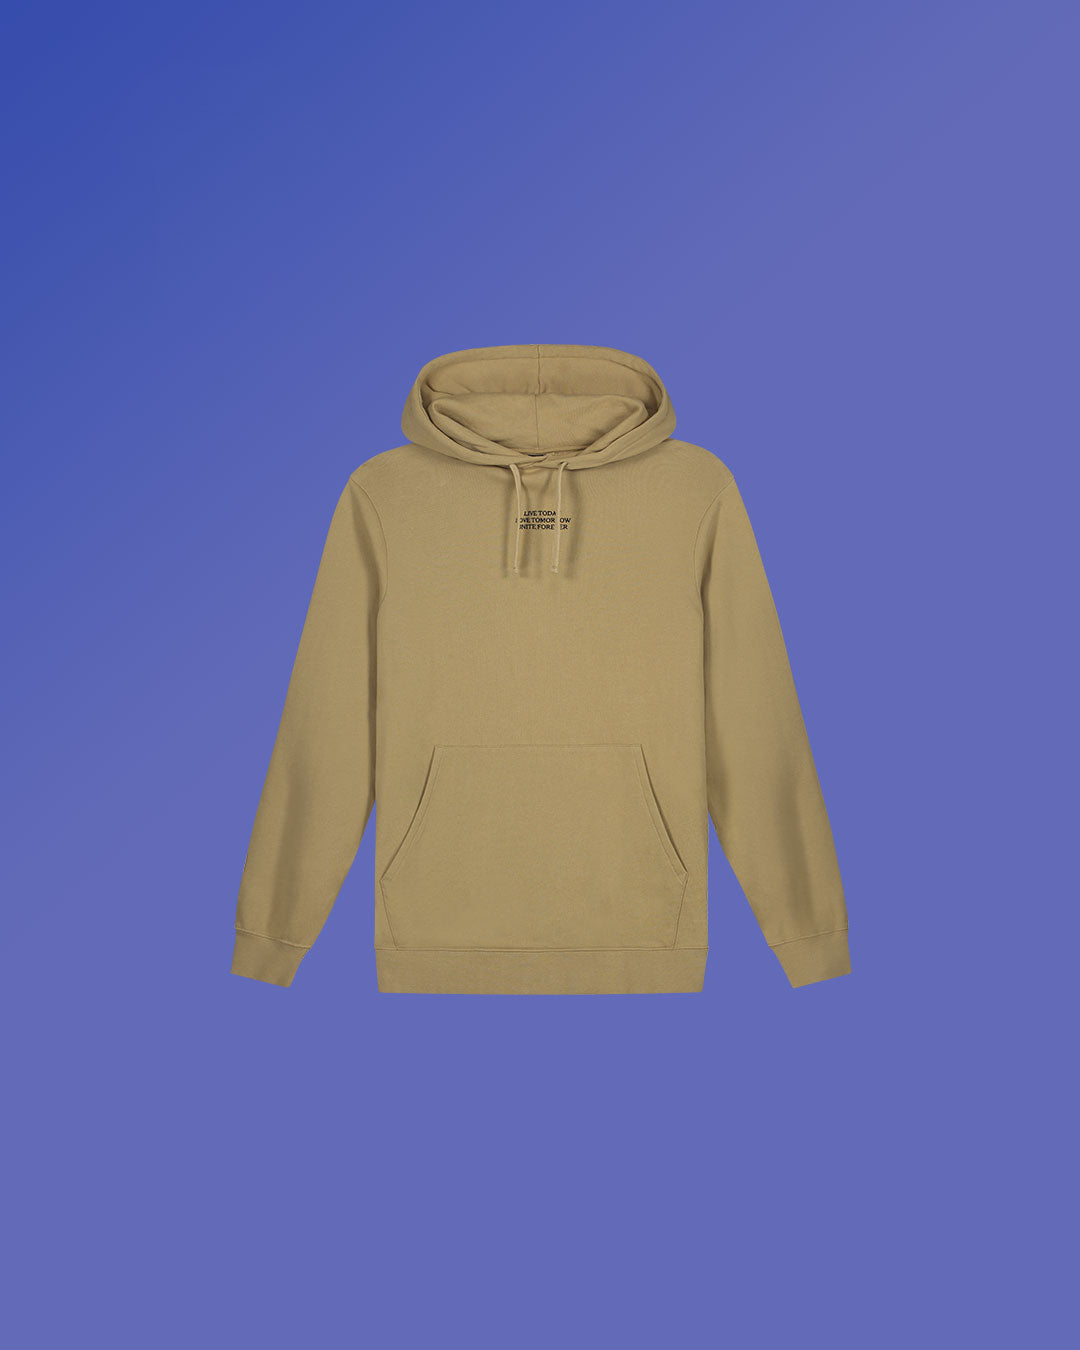 TML by Tomorrowland Unite Forever Hoodie - COMING SOON